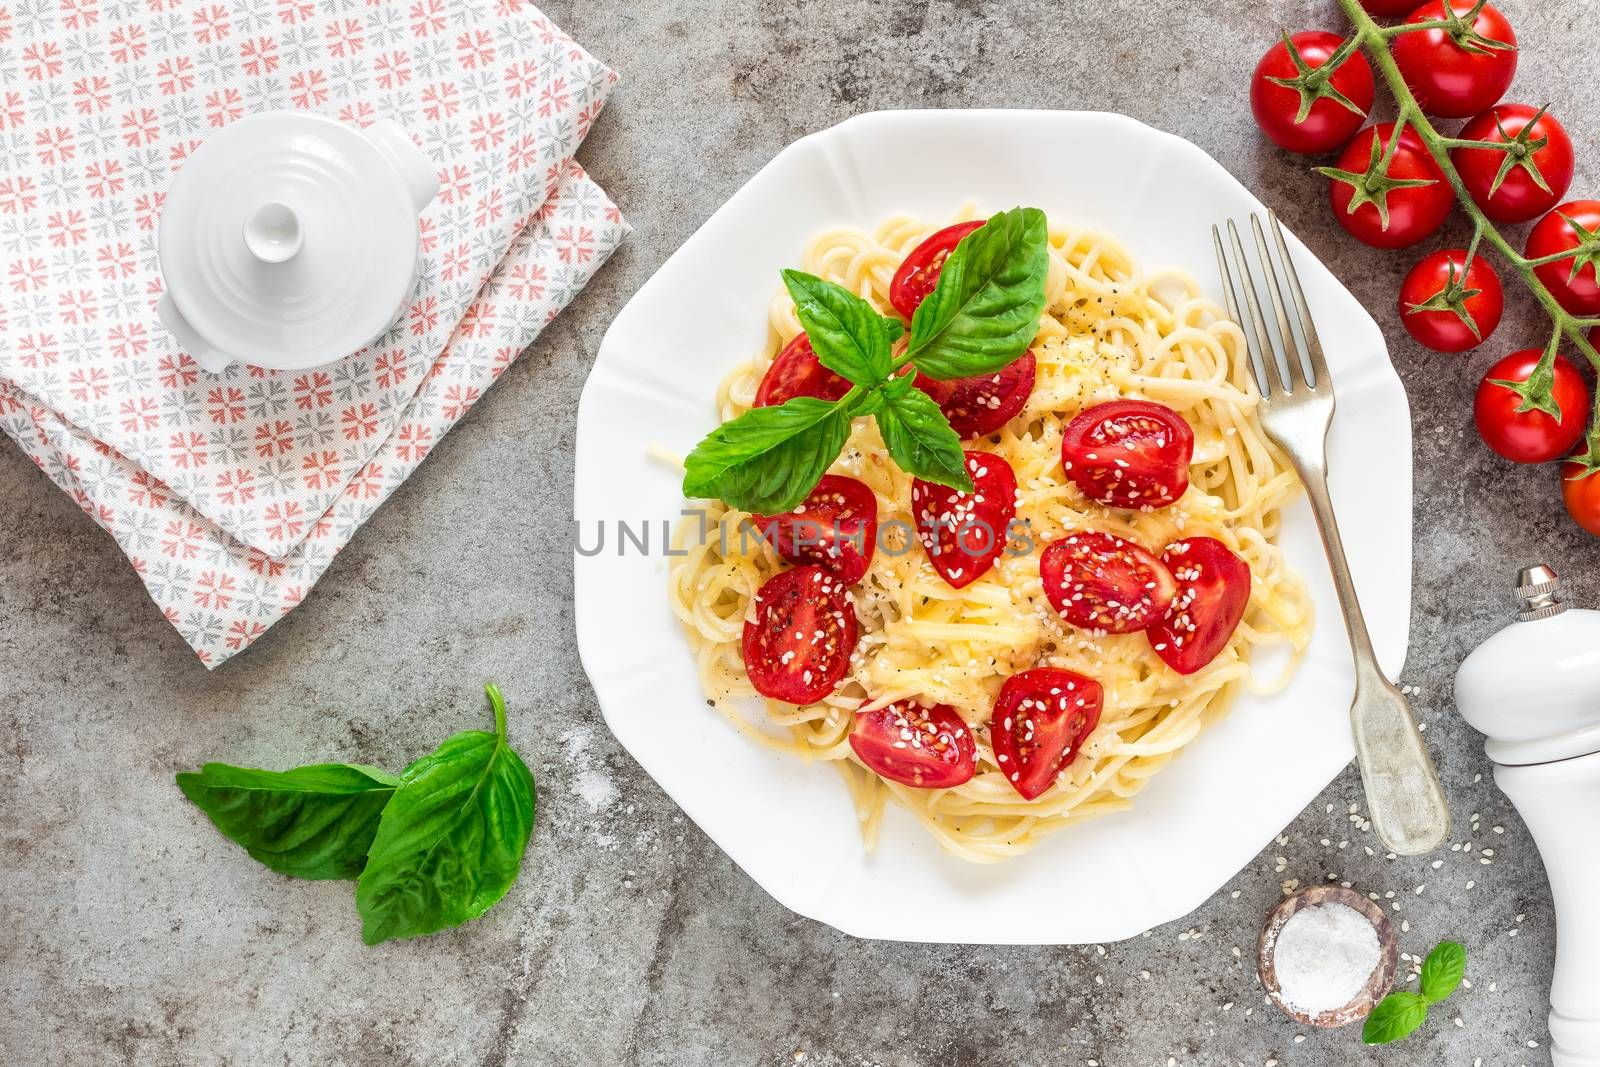 Spaghetti with tomatoes, basil and cheese